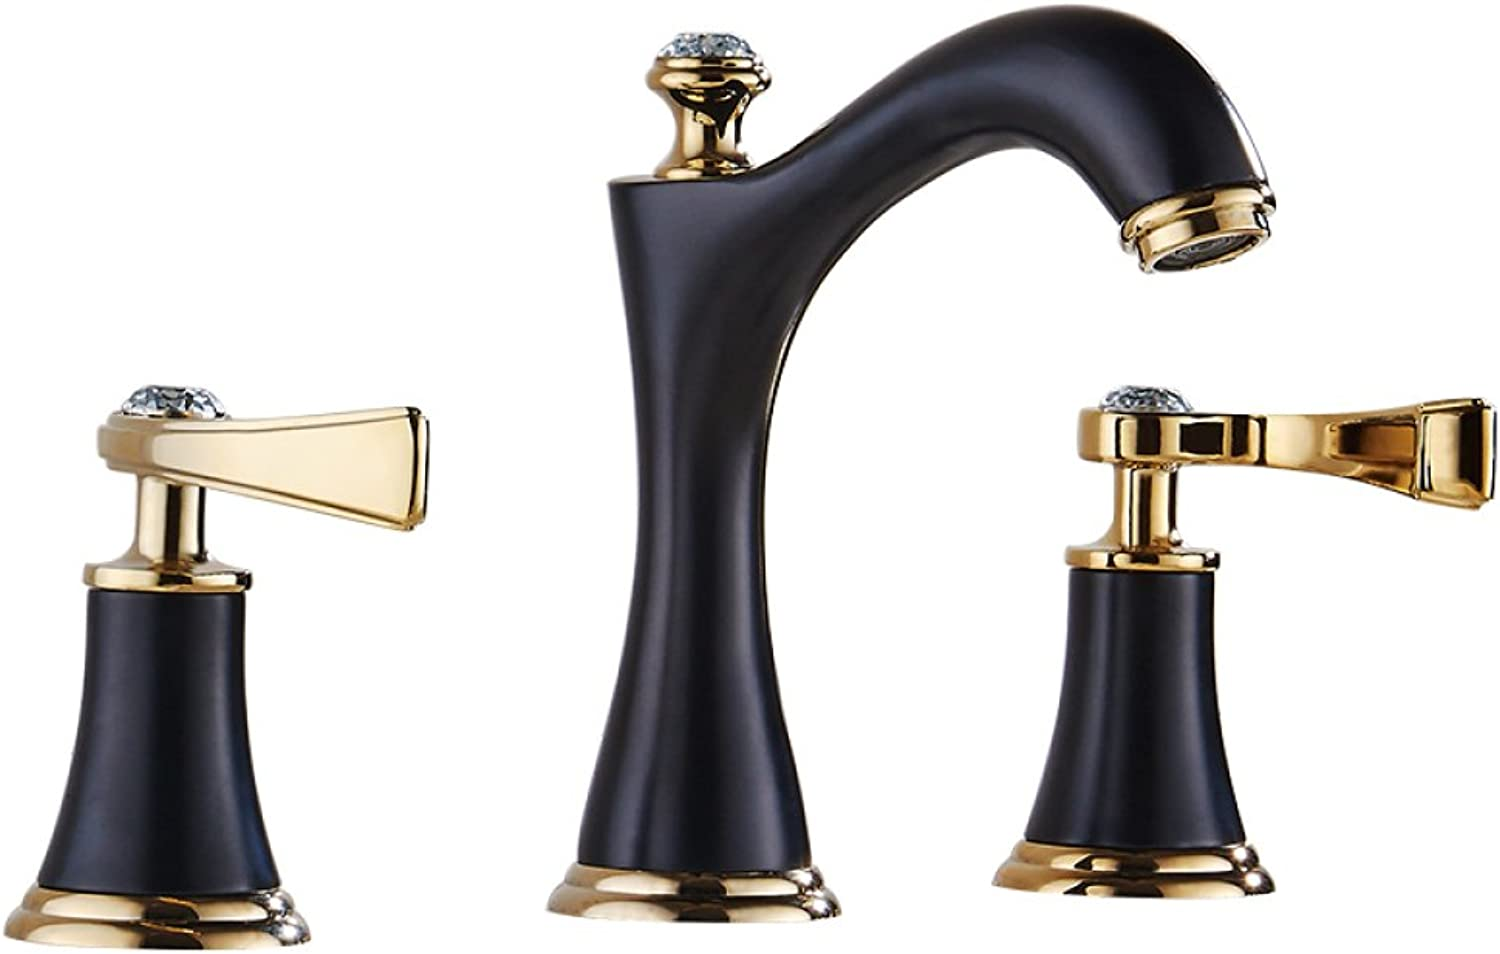 Bathtub Tap, Three-Hole Washbasin, Hot and Cold, European Bath with Double Divided Handle, Three Pieces,Black